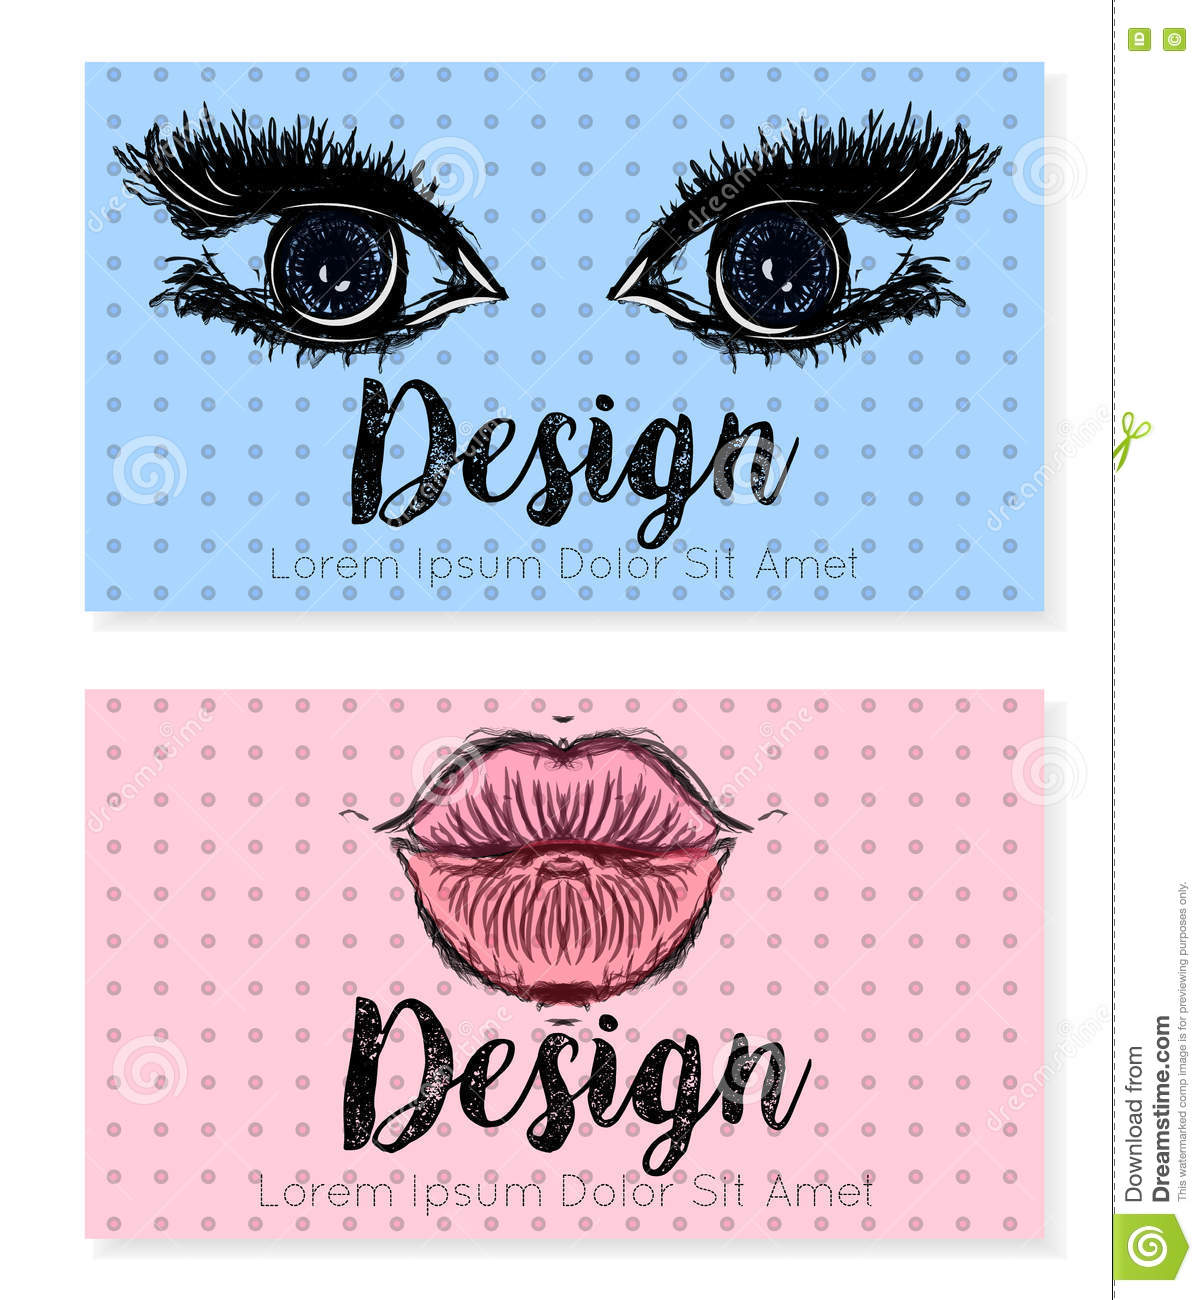 Two Business Card Template For Beauty Salon, Make-up Or Cosmetic ...